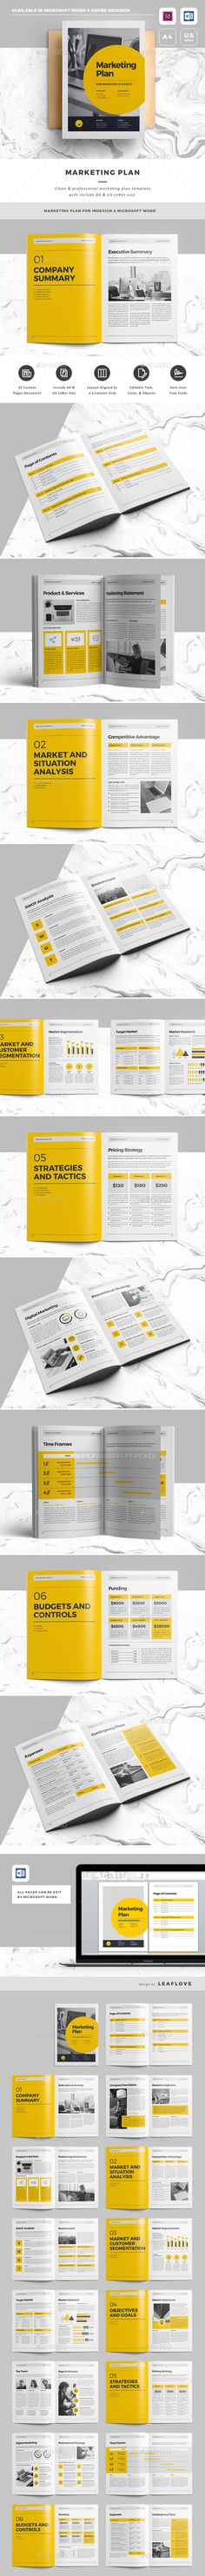 Contrast business brochure template. This layout is suitable for any project purpose. Very easy to use and customise. ................................................ Size : A4 (21×29.7CM) 4 ...Contrast business brochure template. This layout is suitable for any project purpose. Very easy to use and customise. ................................................ Size : A4 (21×29.7CM) 4 pages Free Font Used : fontfabric.com/nexa-free-font/ ................................................ File i